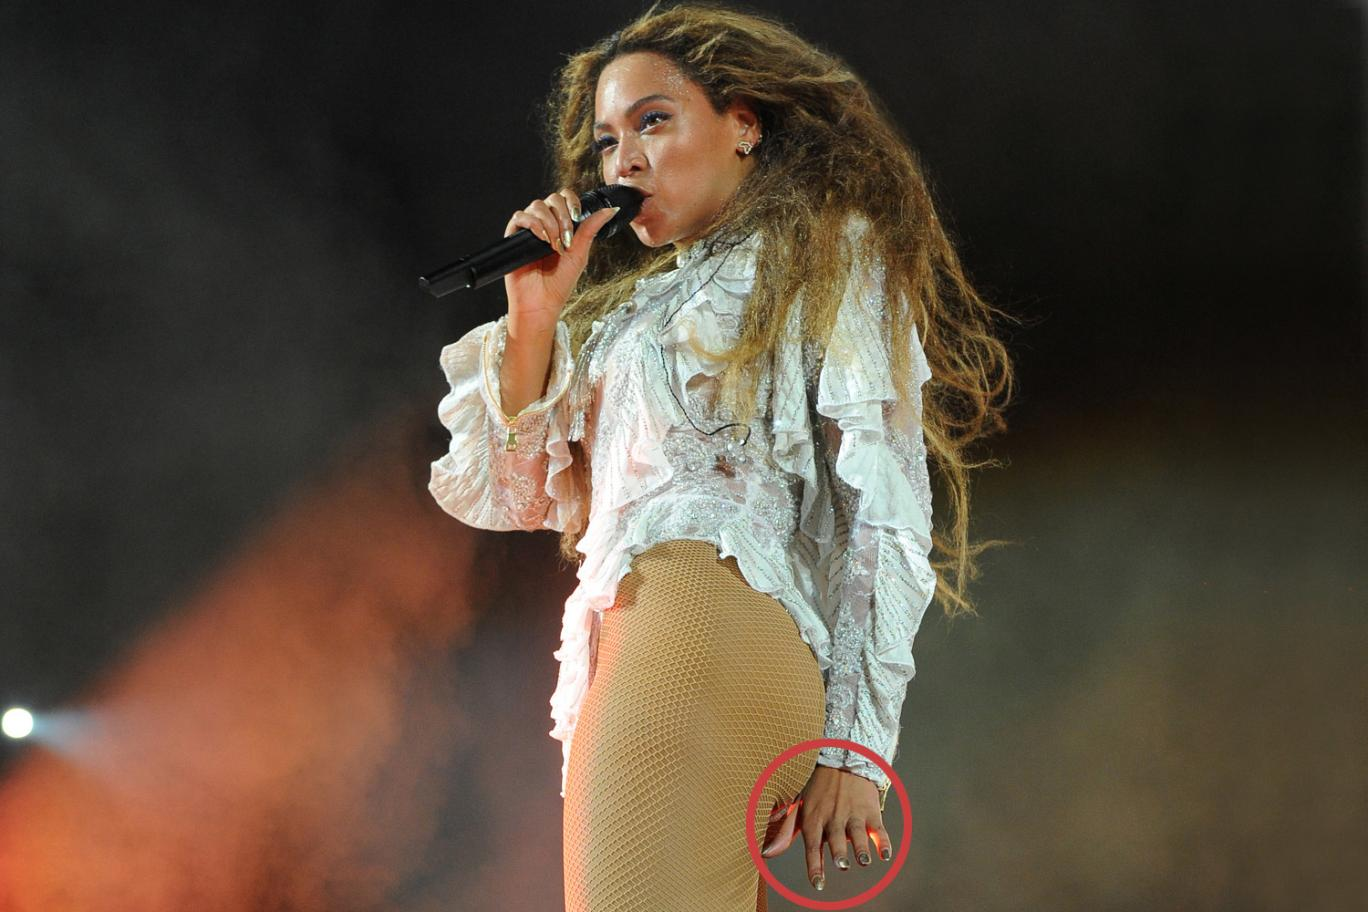 Beyonce And Jay-Z Pictured Without Wedding Rings Amid Cheating Speculation